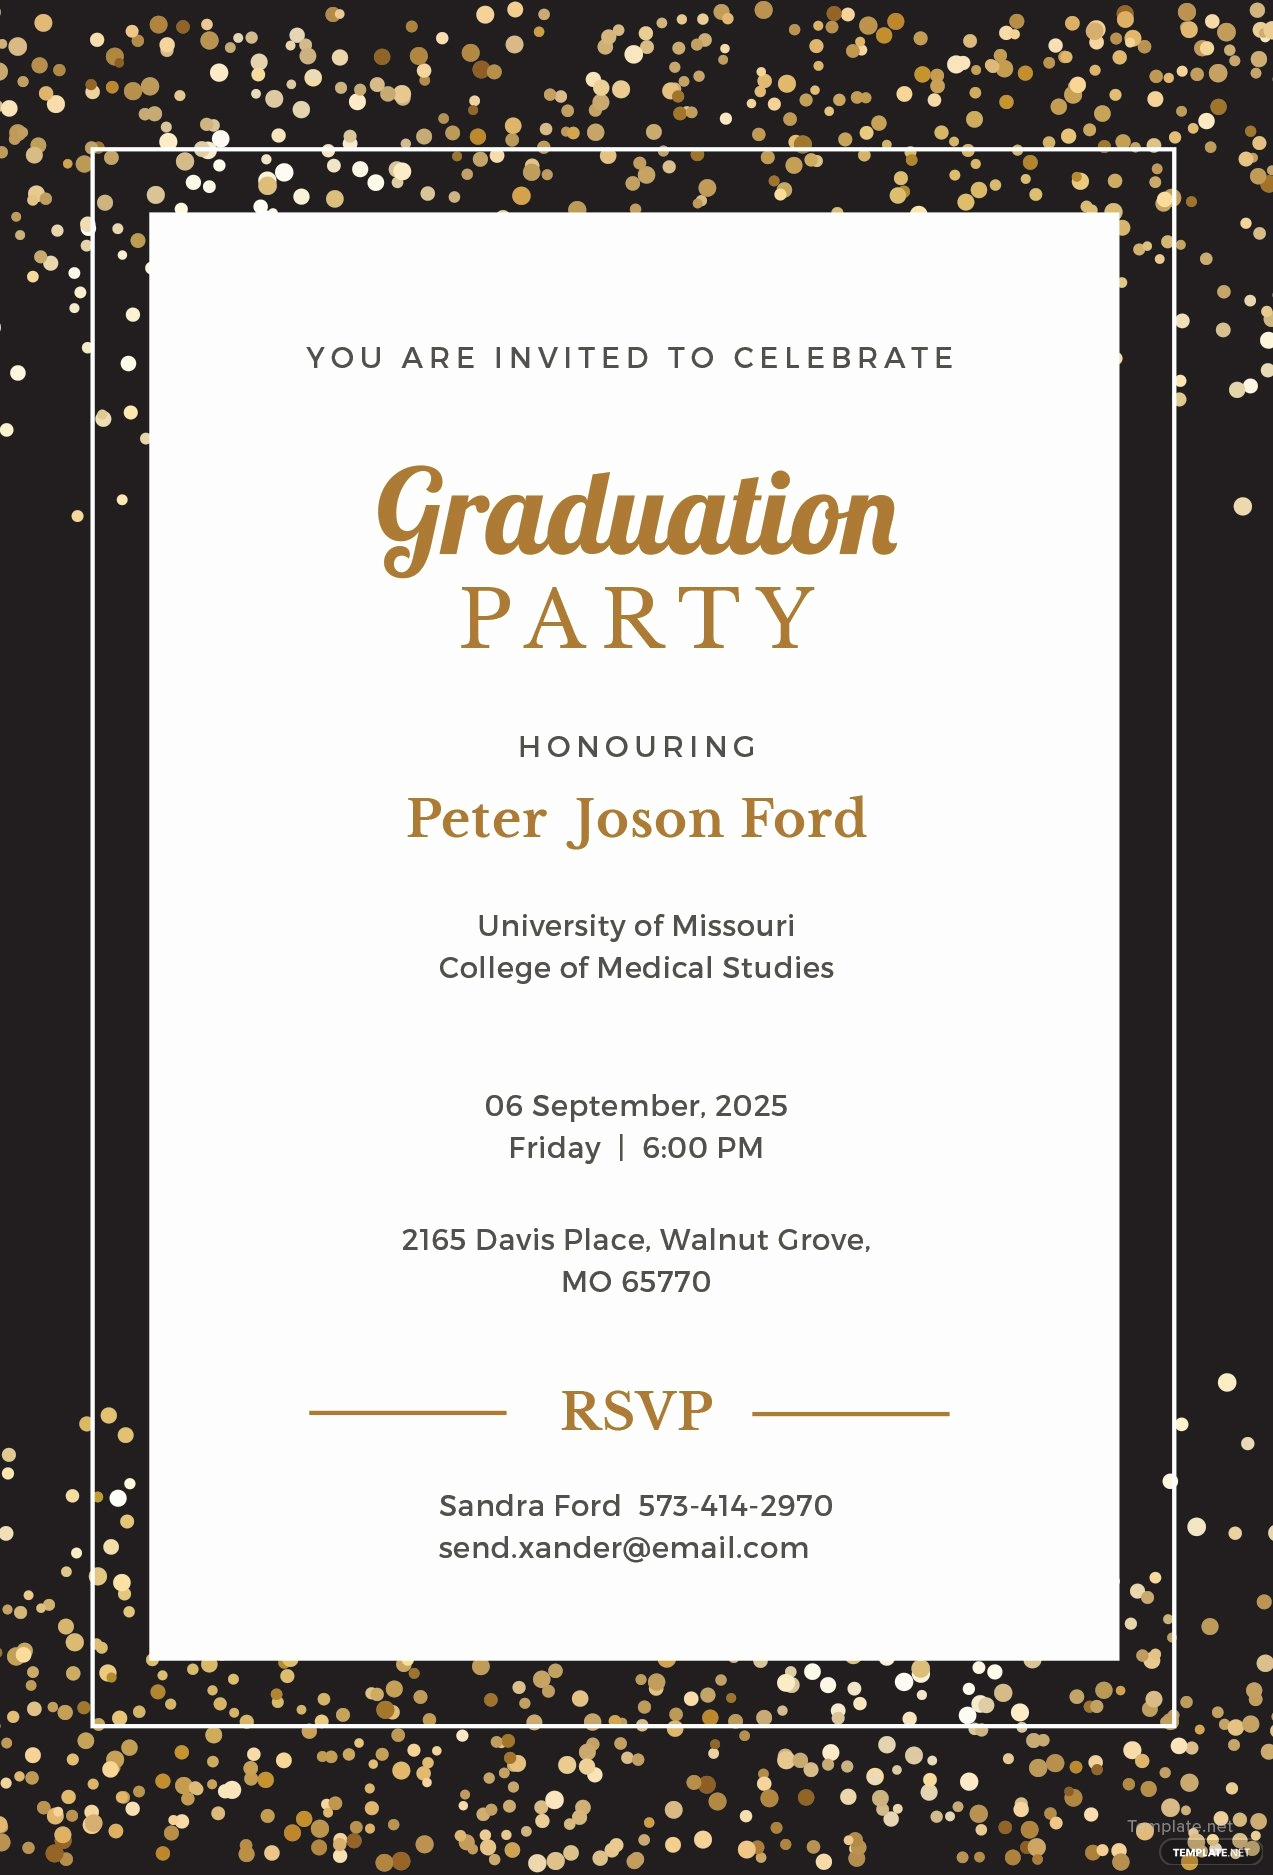 Graduation Invitation Templates Microsoft Word Luxury Free Simple Graduation Invitation Template In Microsoft